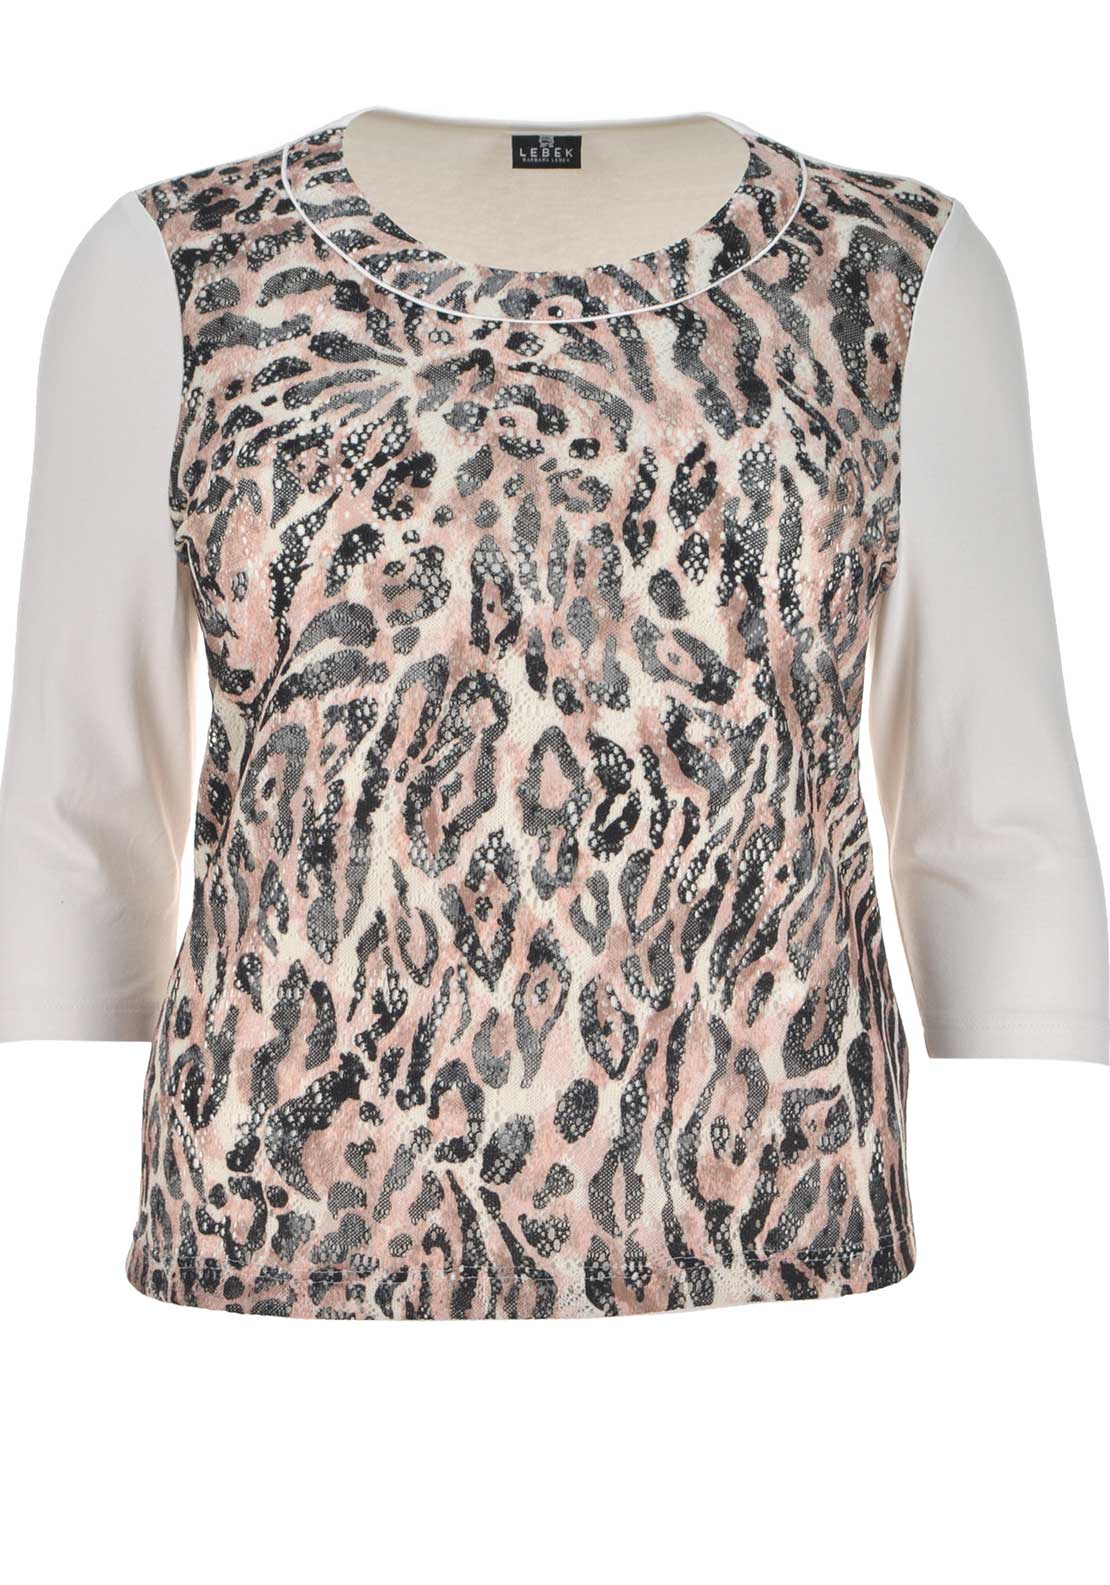 Lebek Animal Print Crochet Overlay Top, Multi-Coloured